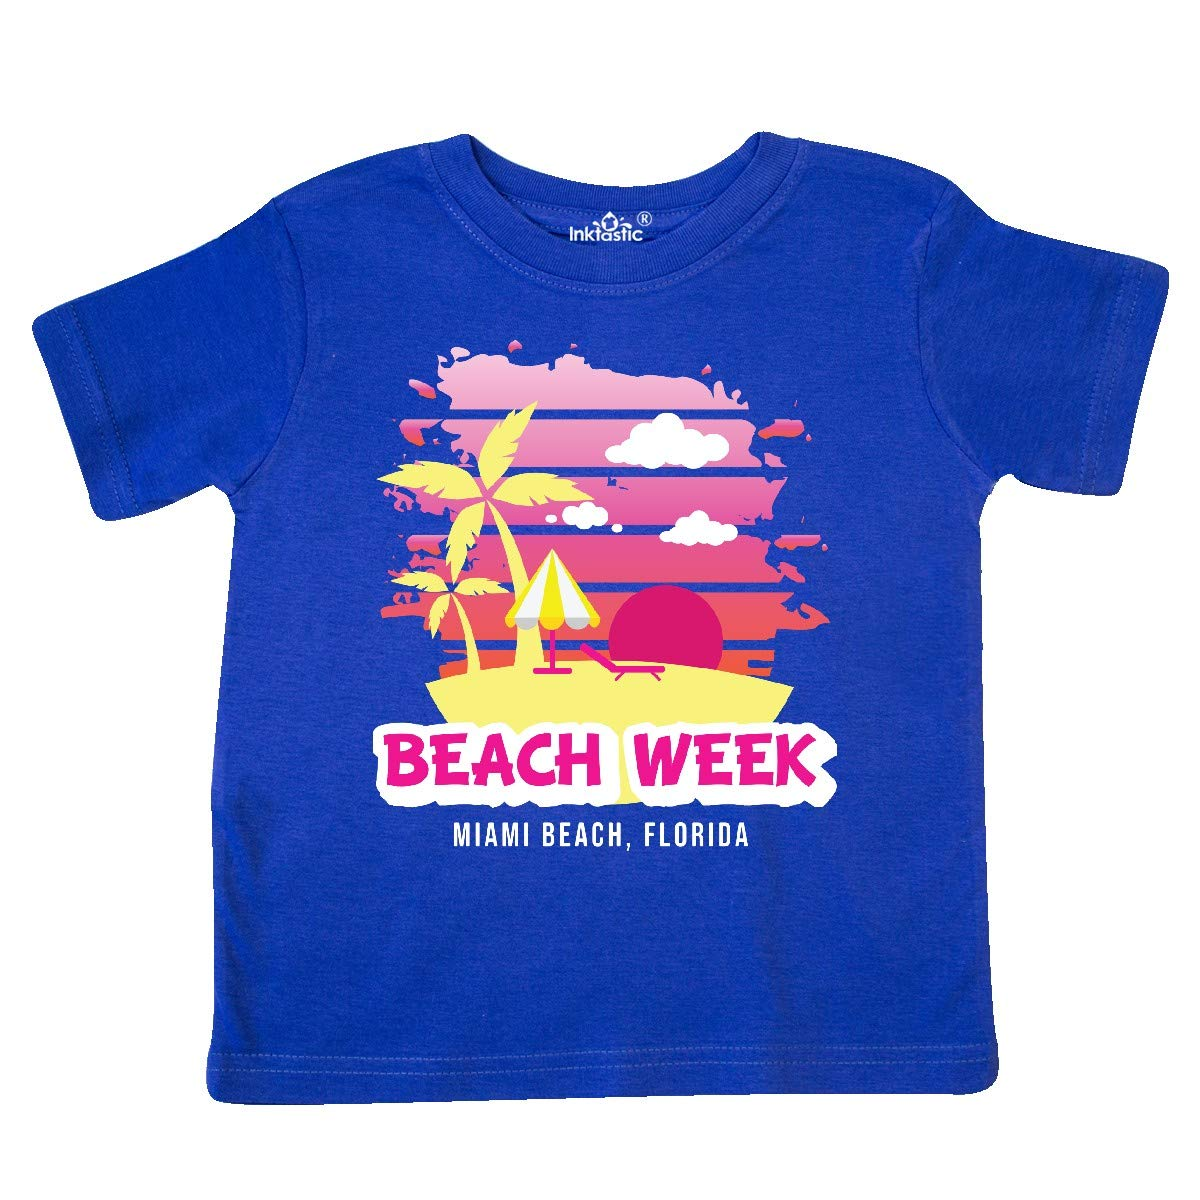 inktastic Beach Week Miami Beach Florida with Palm Trees Toddler T-Shirt